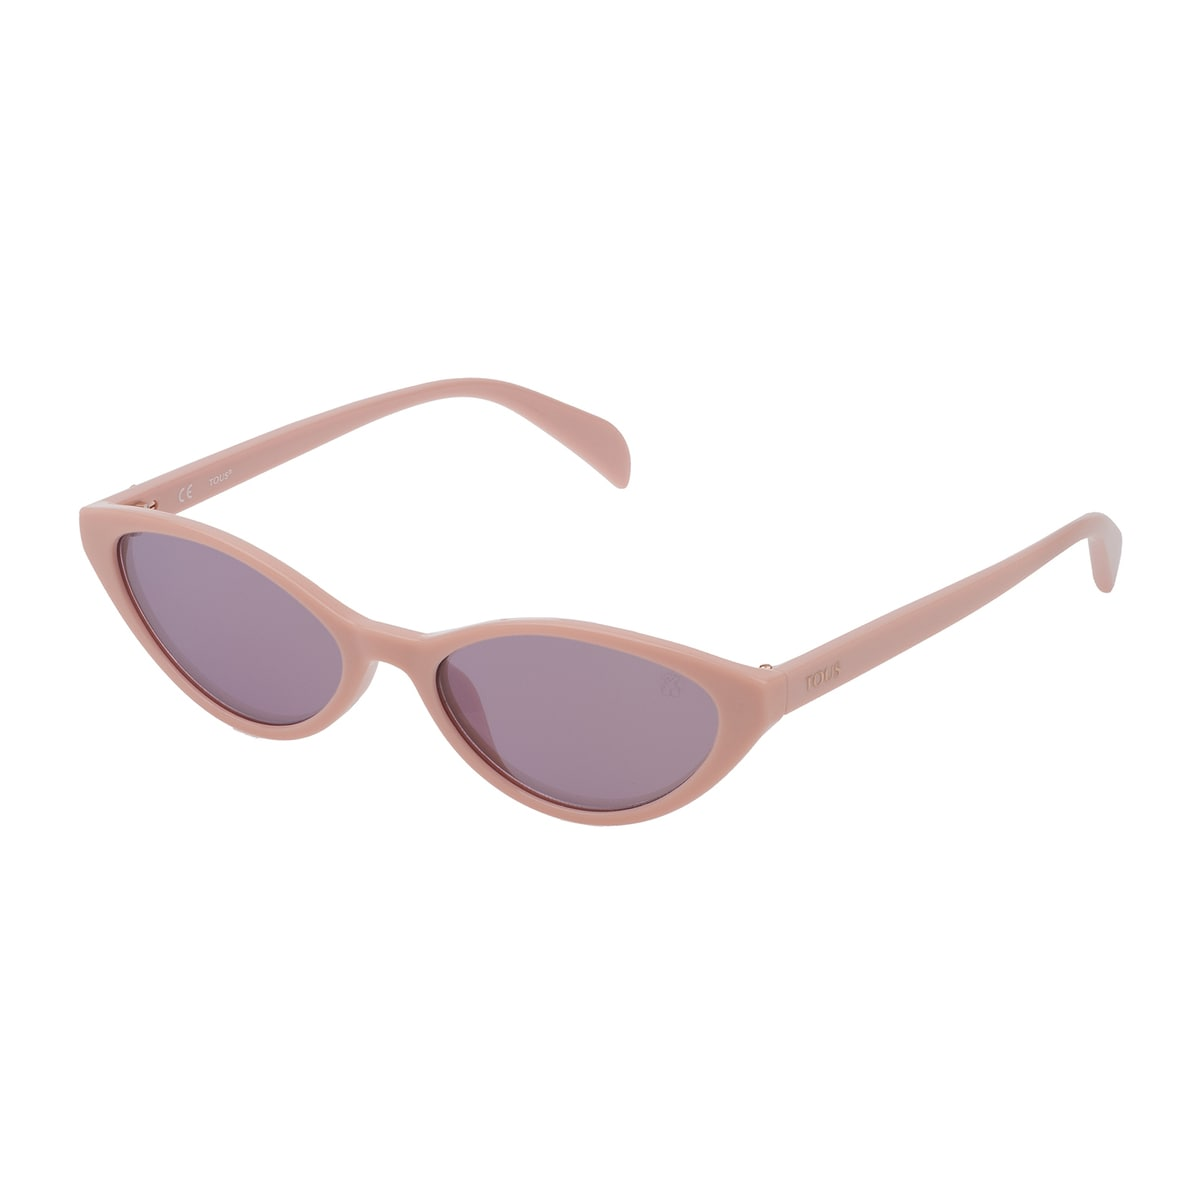 Gafas de sol Bear Cat Eye de acetato en color rosa